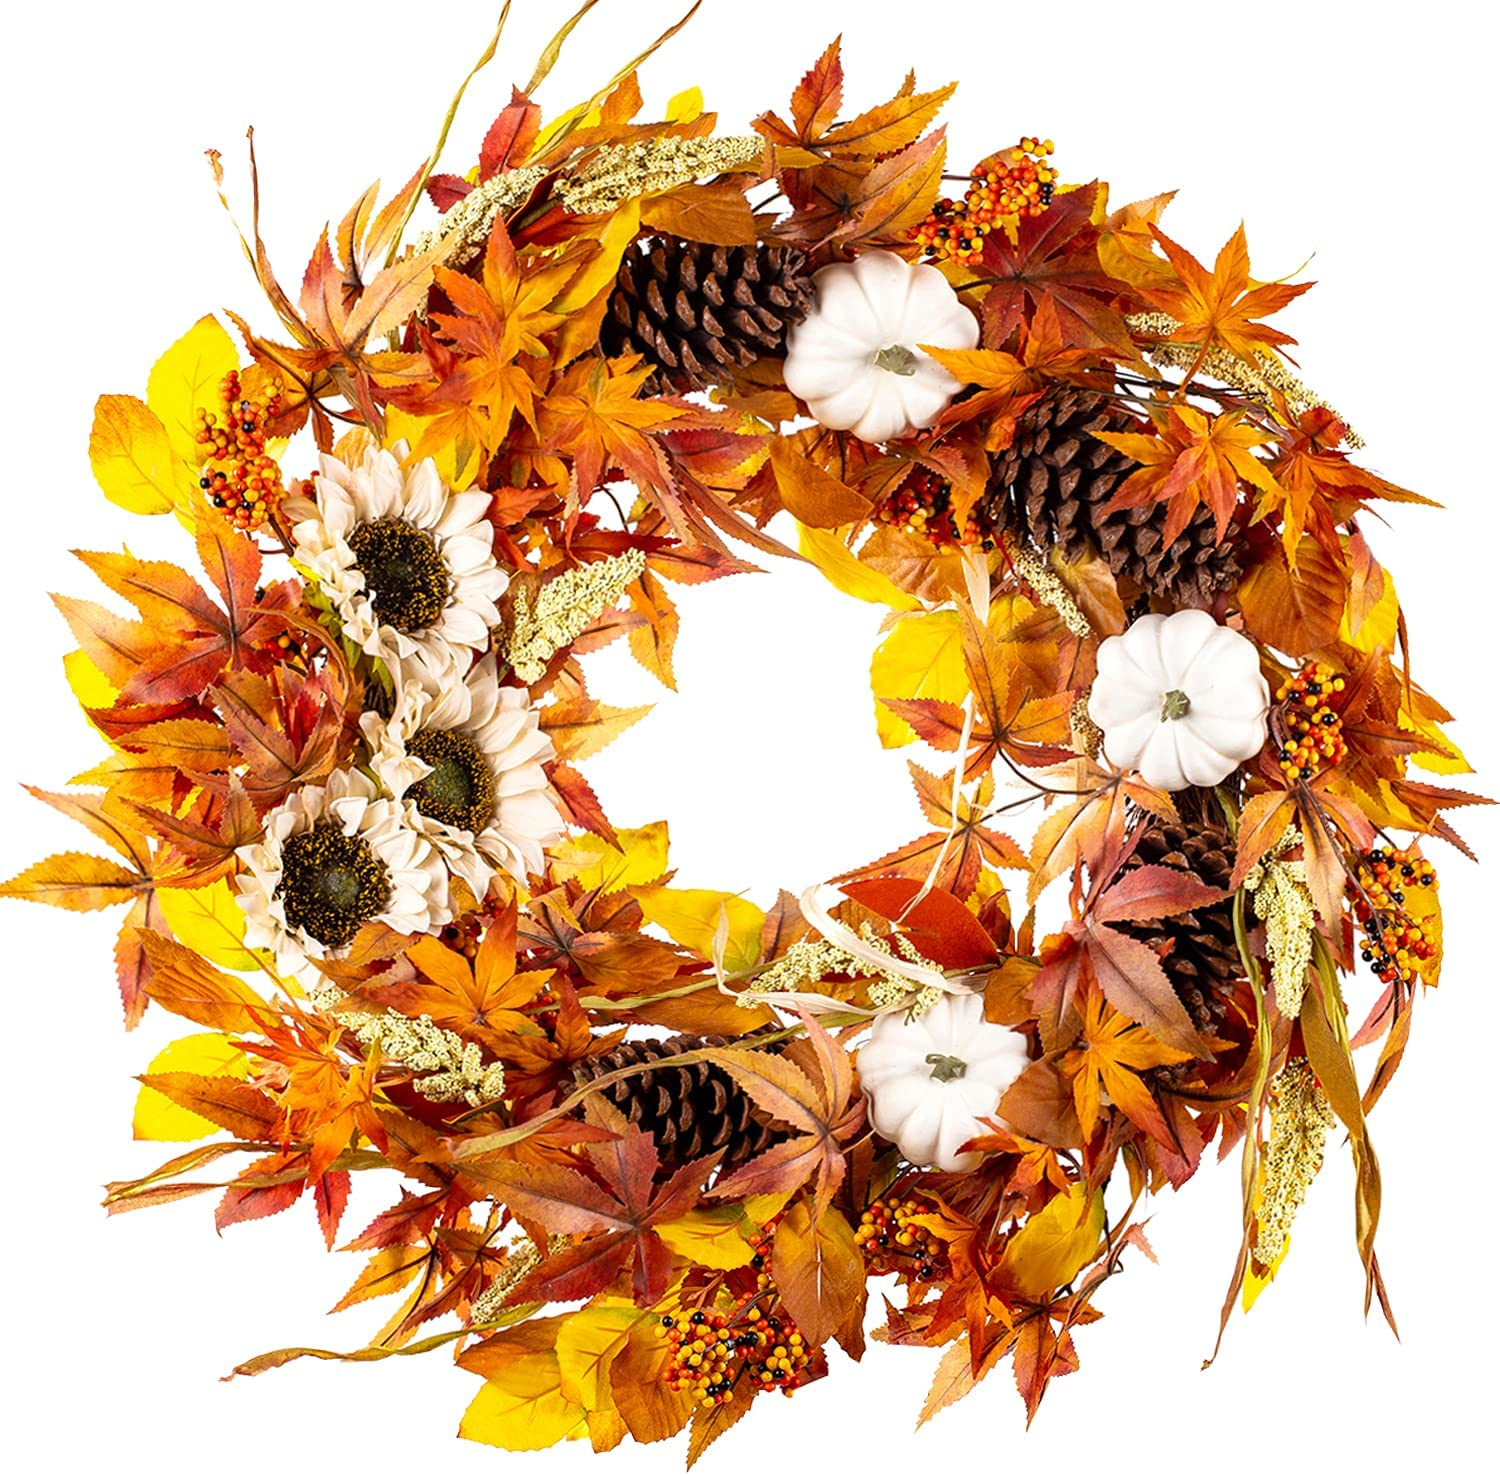 National uniform free shipping WANNA-CUL 24 Inch Fall Wreath Decoration for Door Some reservation with Whi Front